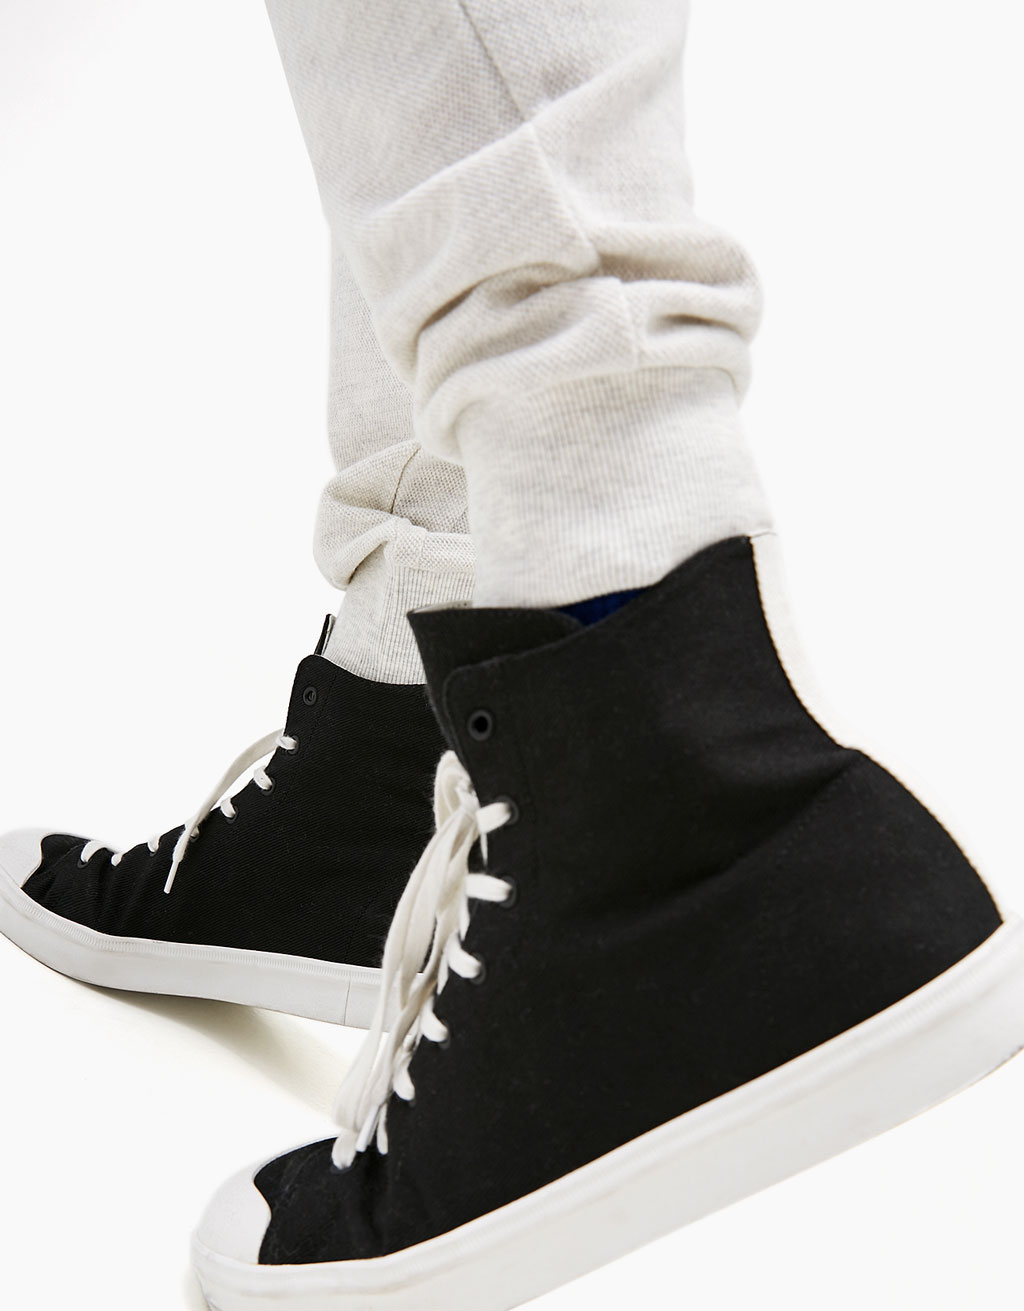 Men's fabric high-top sneakers with rubber toe